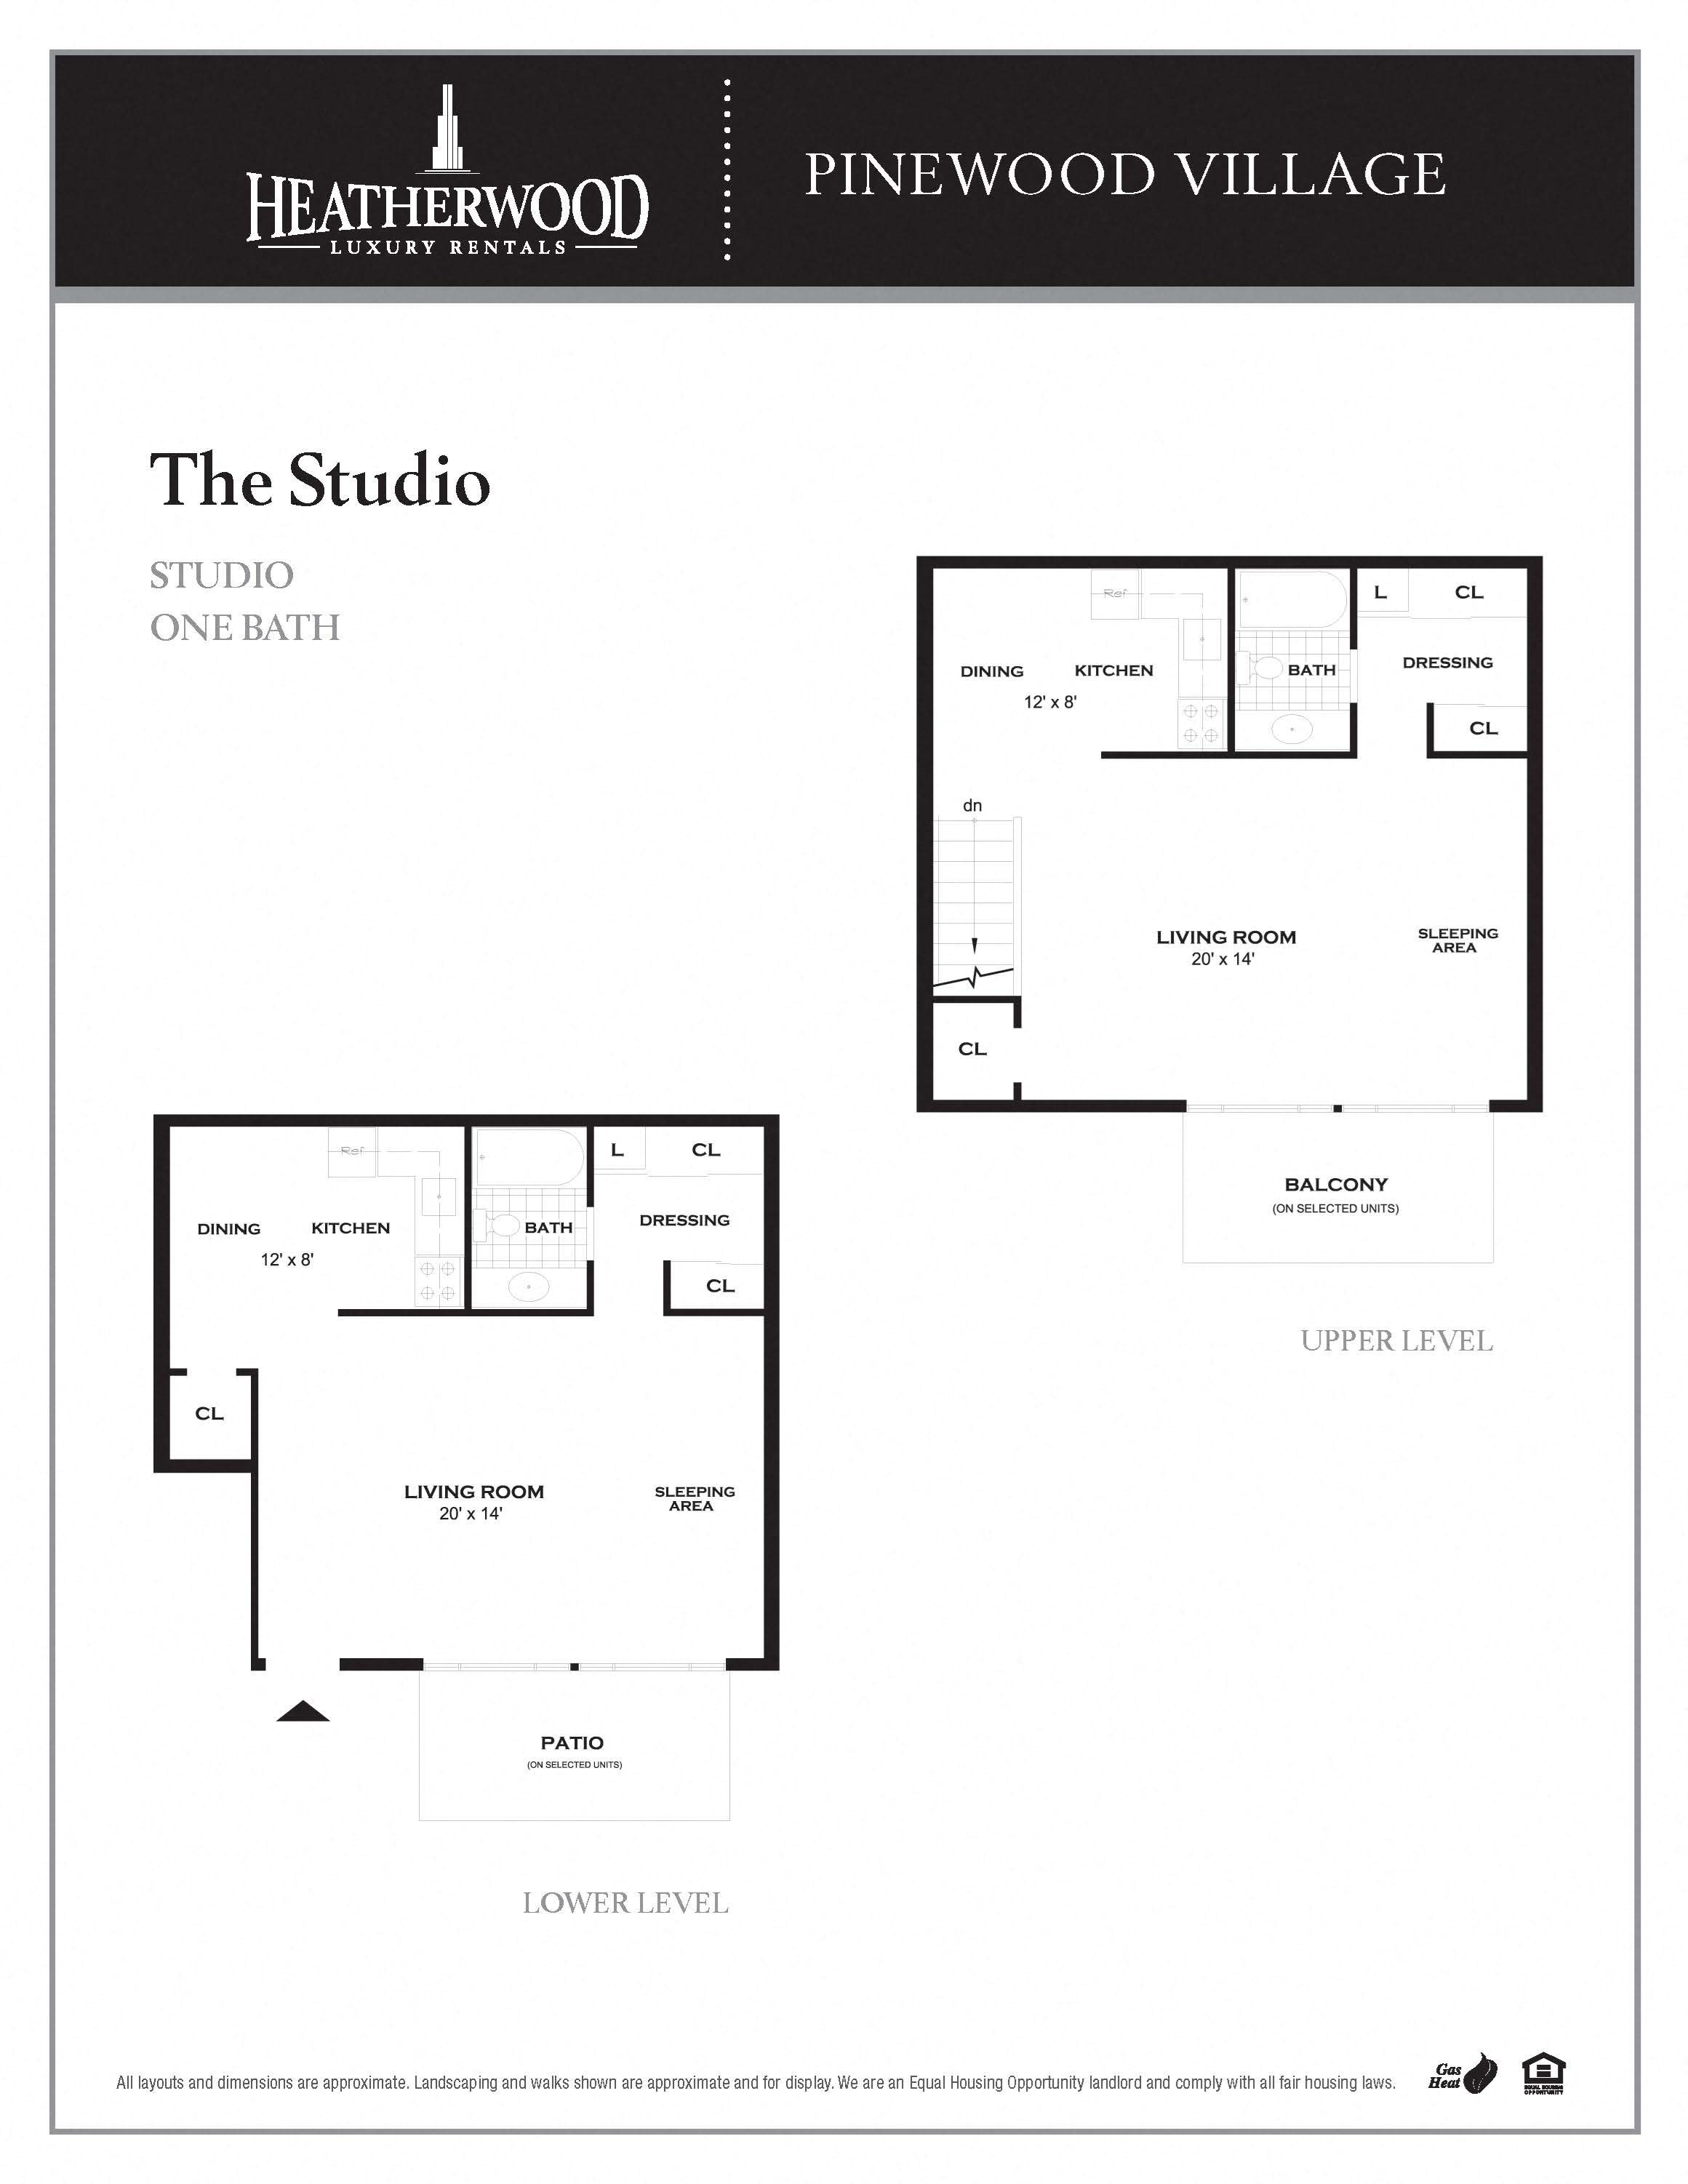 The Studio Floorplan at Pinewood Village